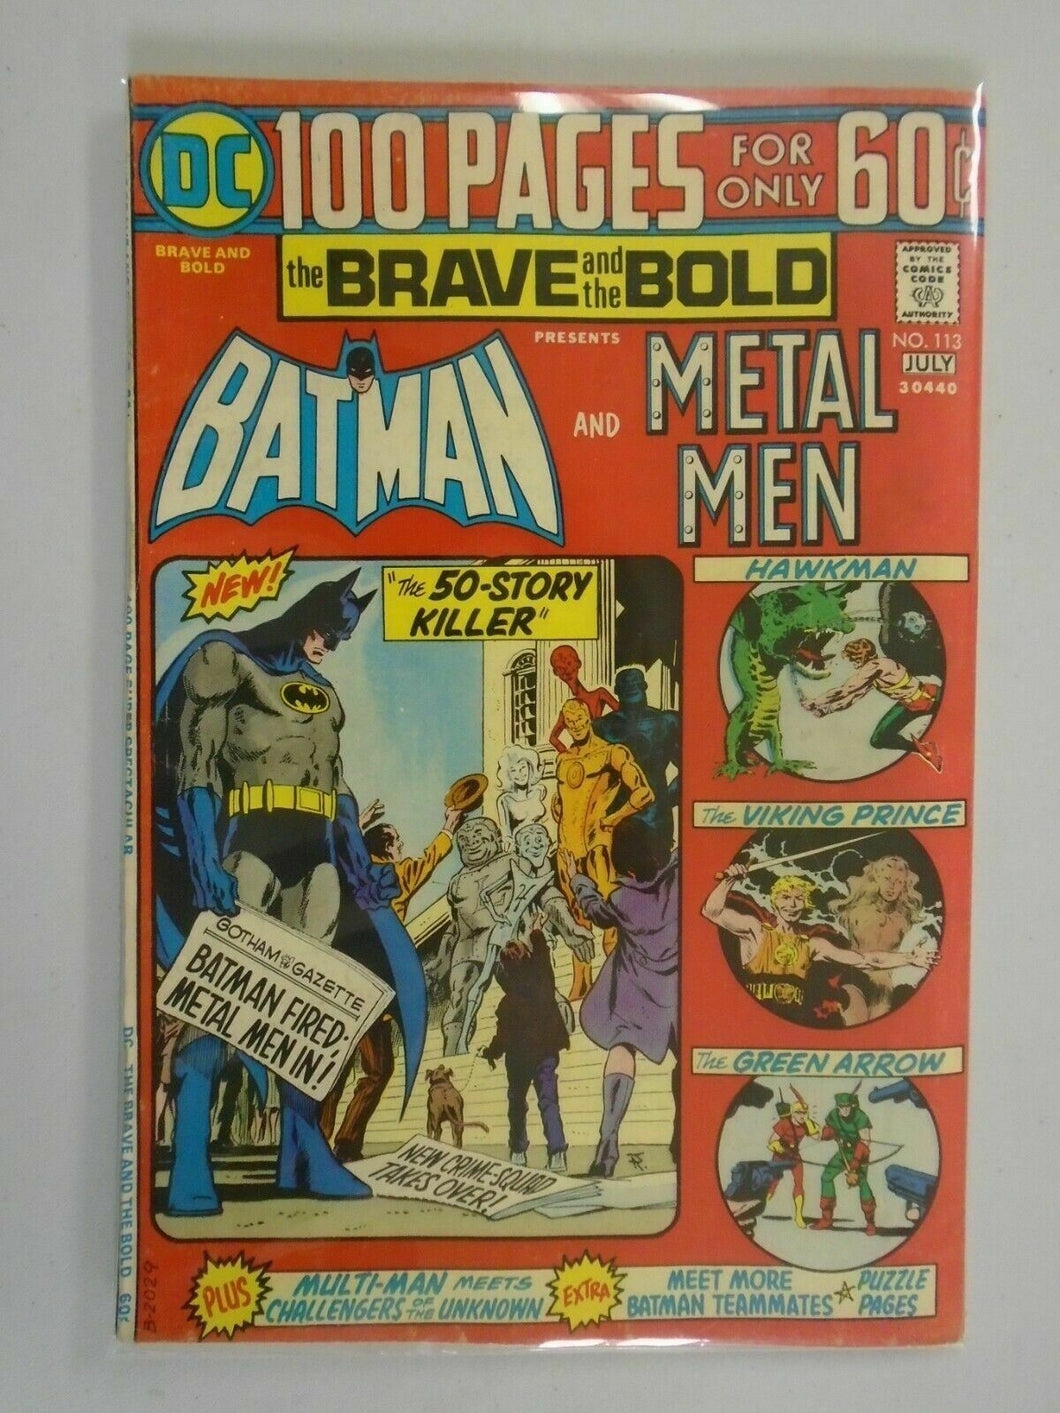 Brave and the Bold #113 4.0 VG (1974 1st series)